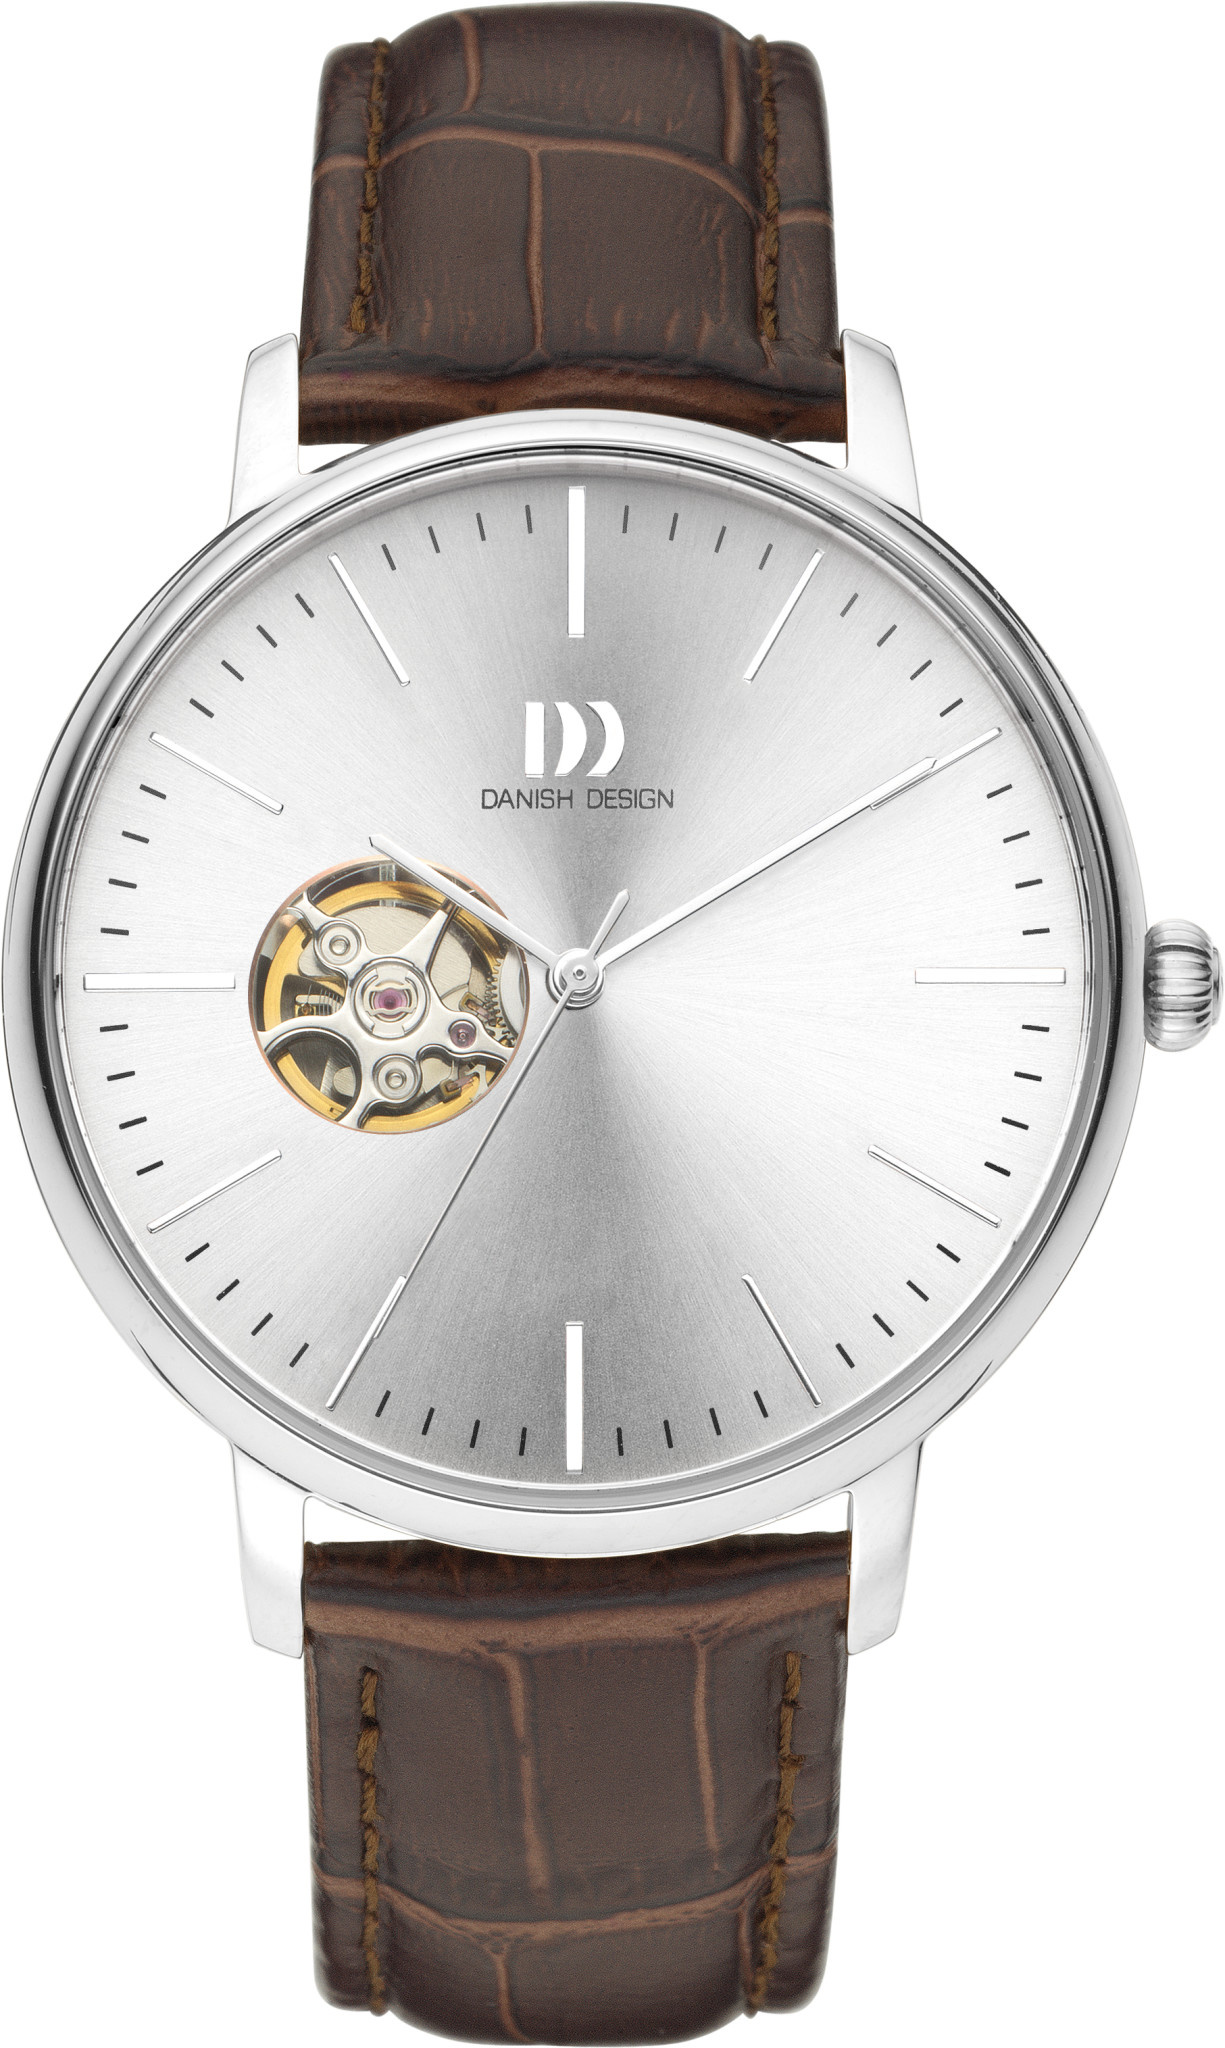 Danish Design Watch Iq12Q1160 Open Heart Automatic Stainless Steel Sapphire-2